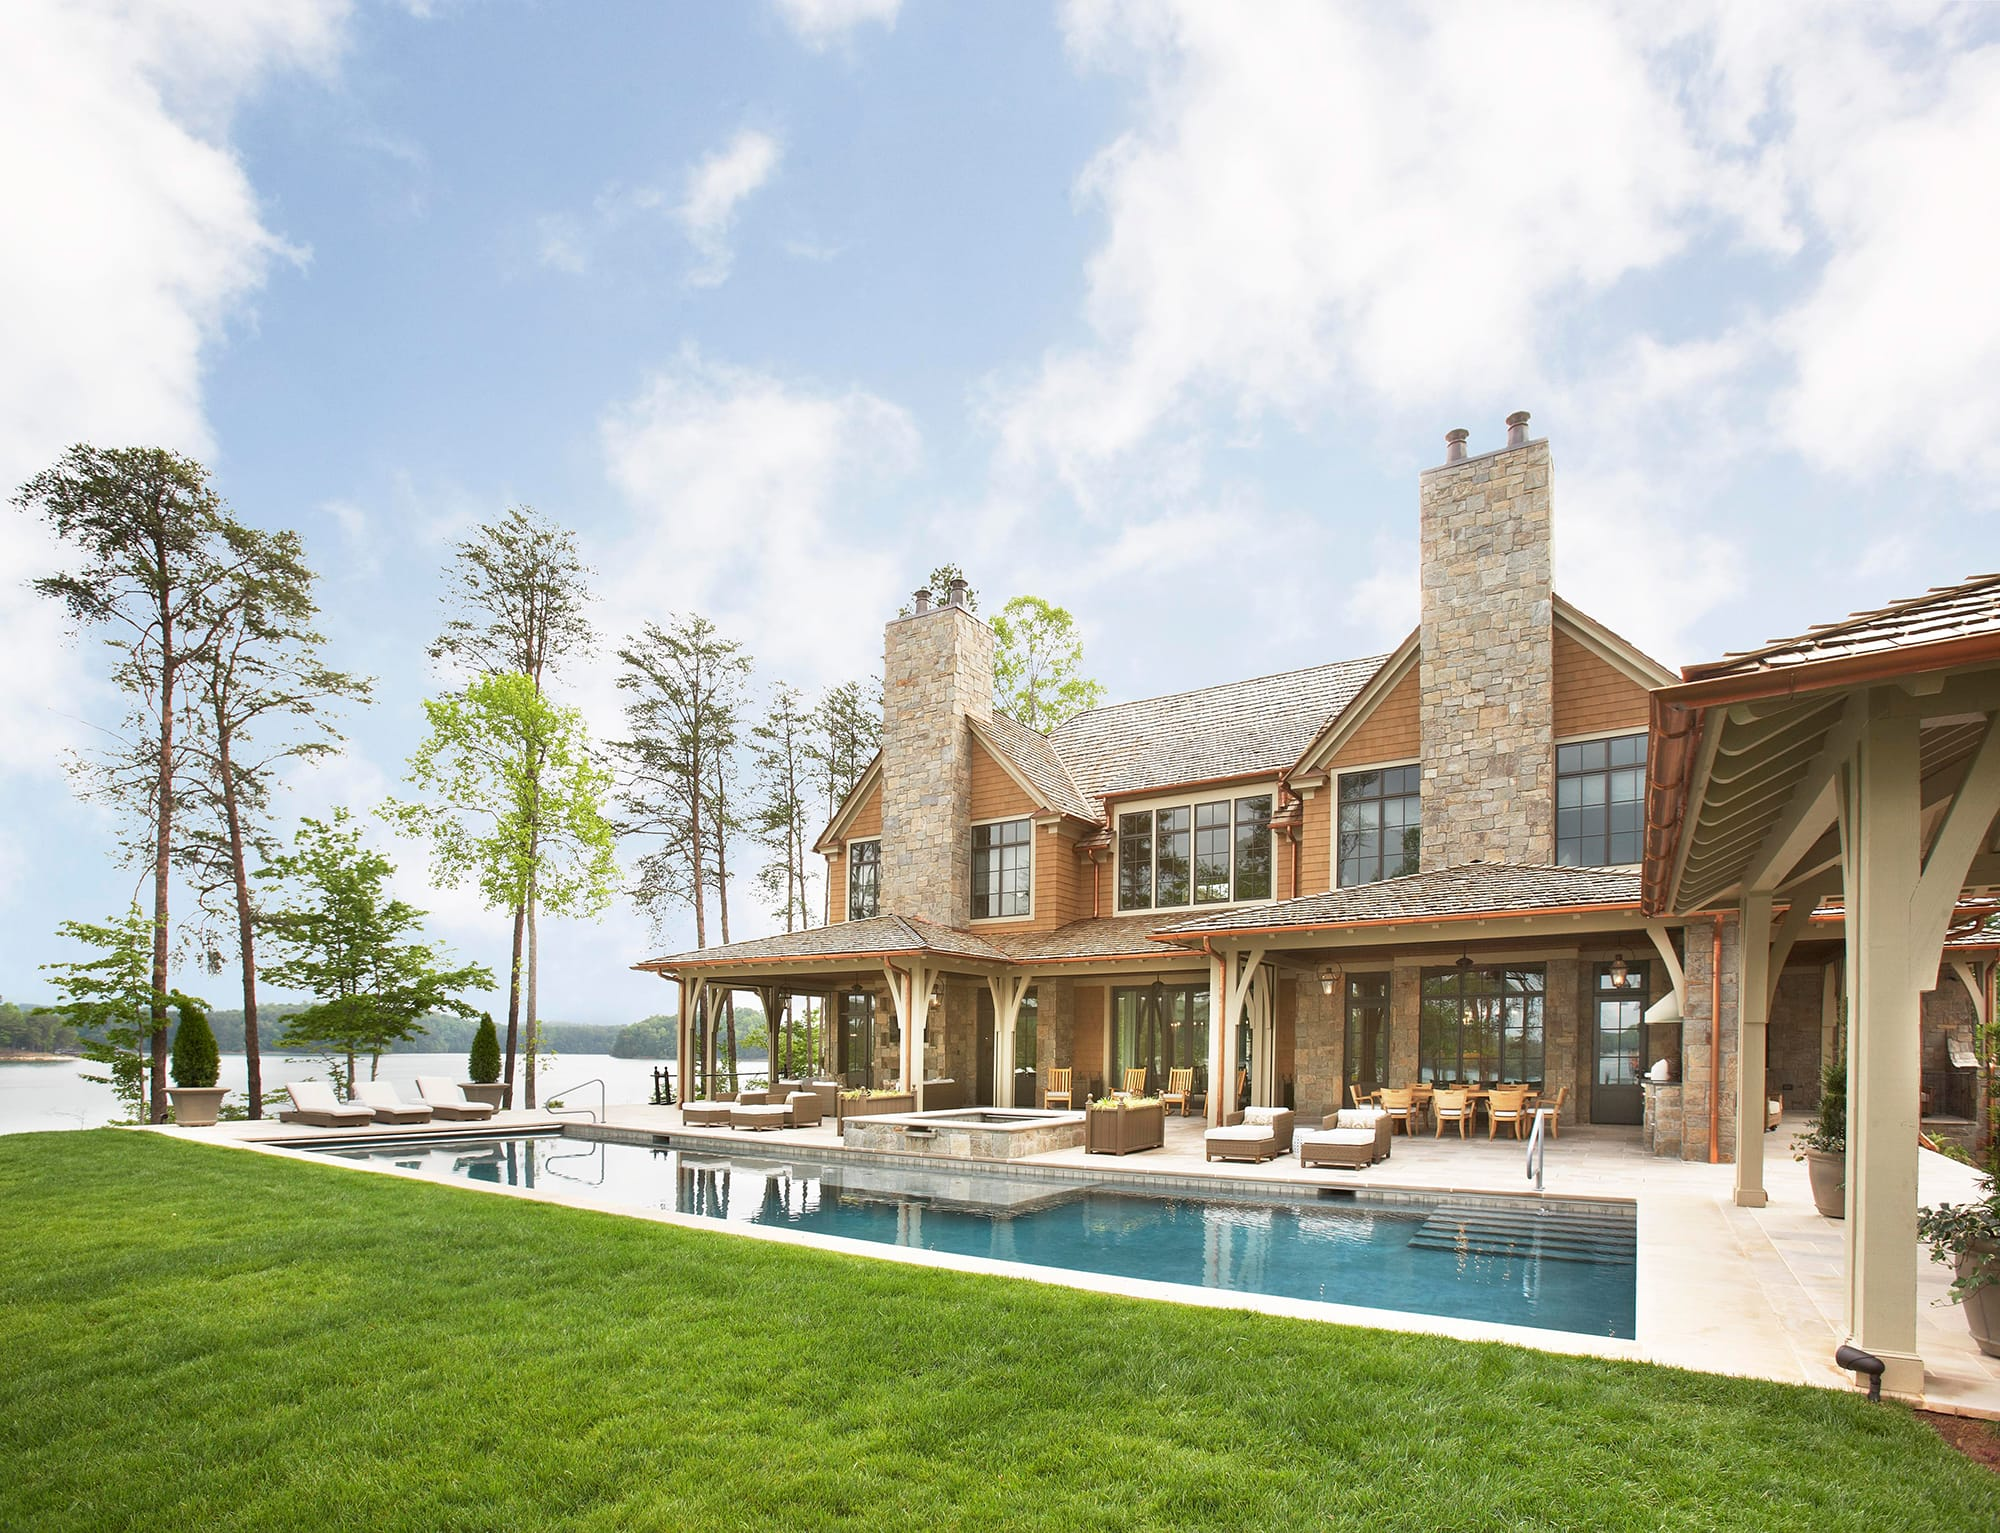 Cliffs home on Lake Keowee